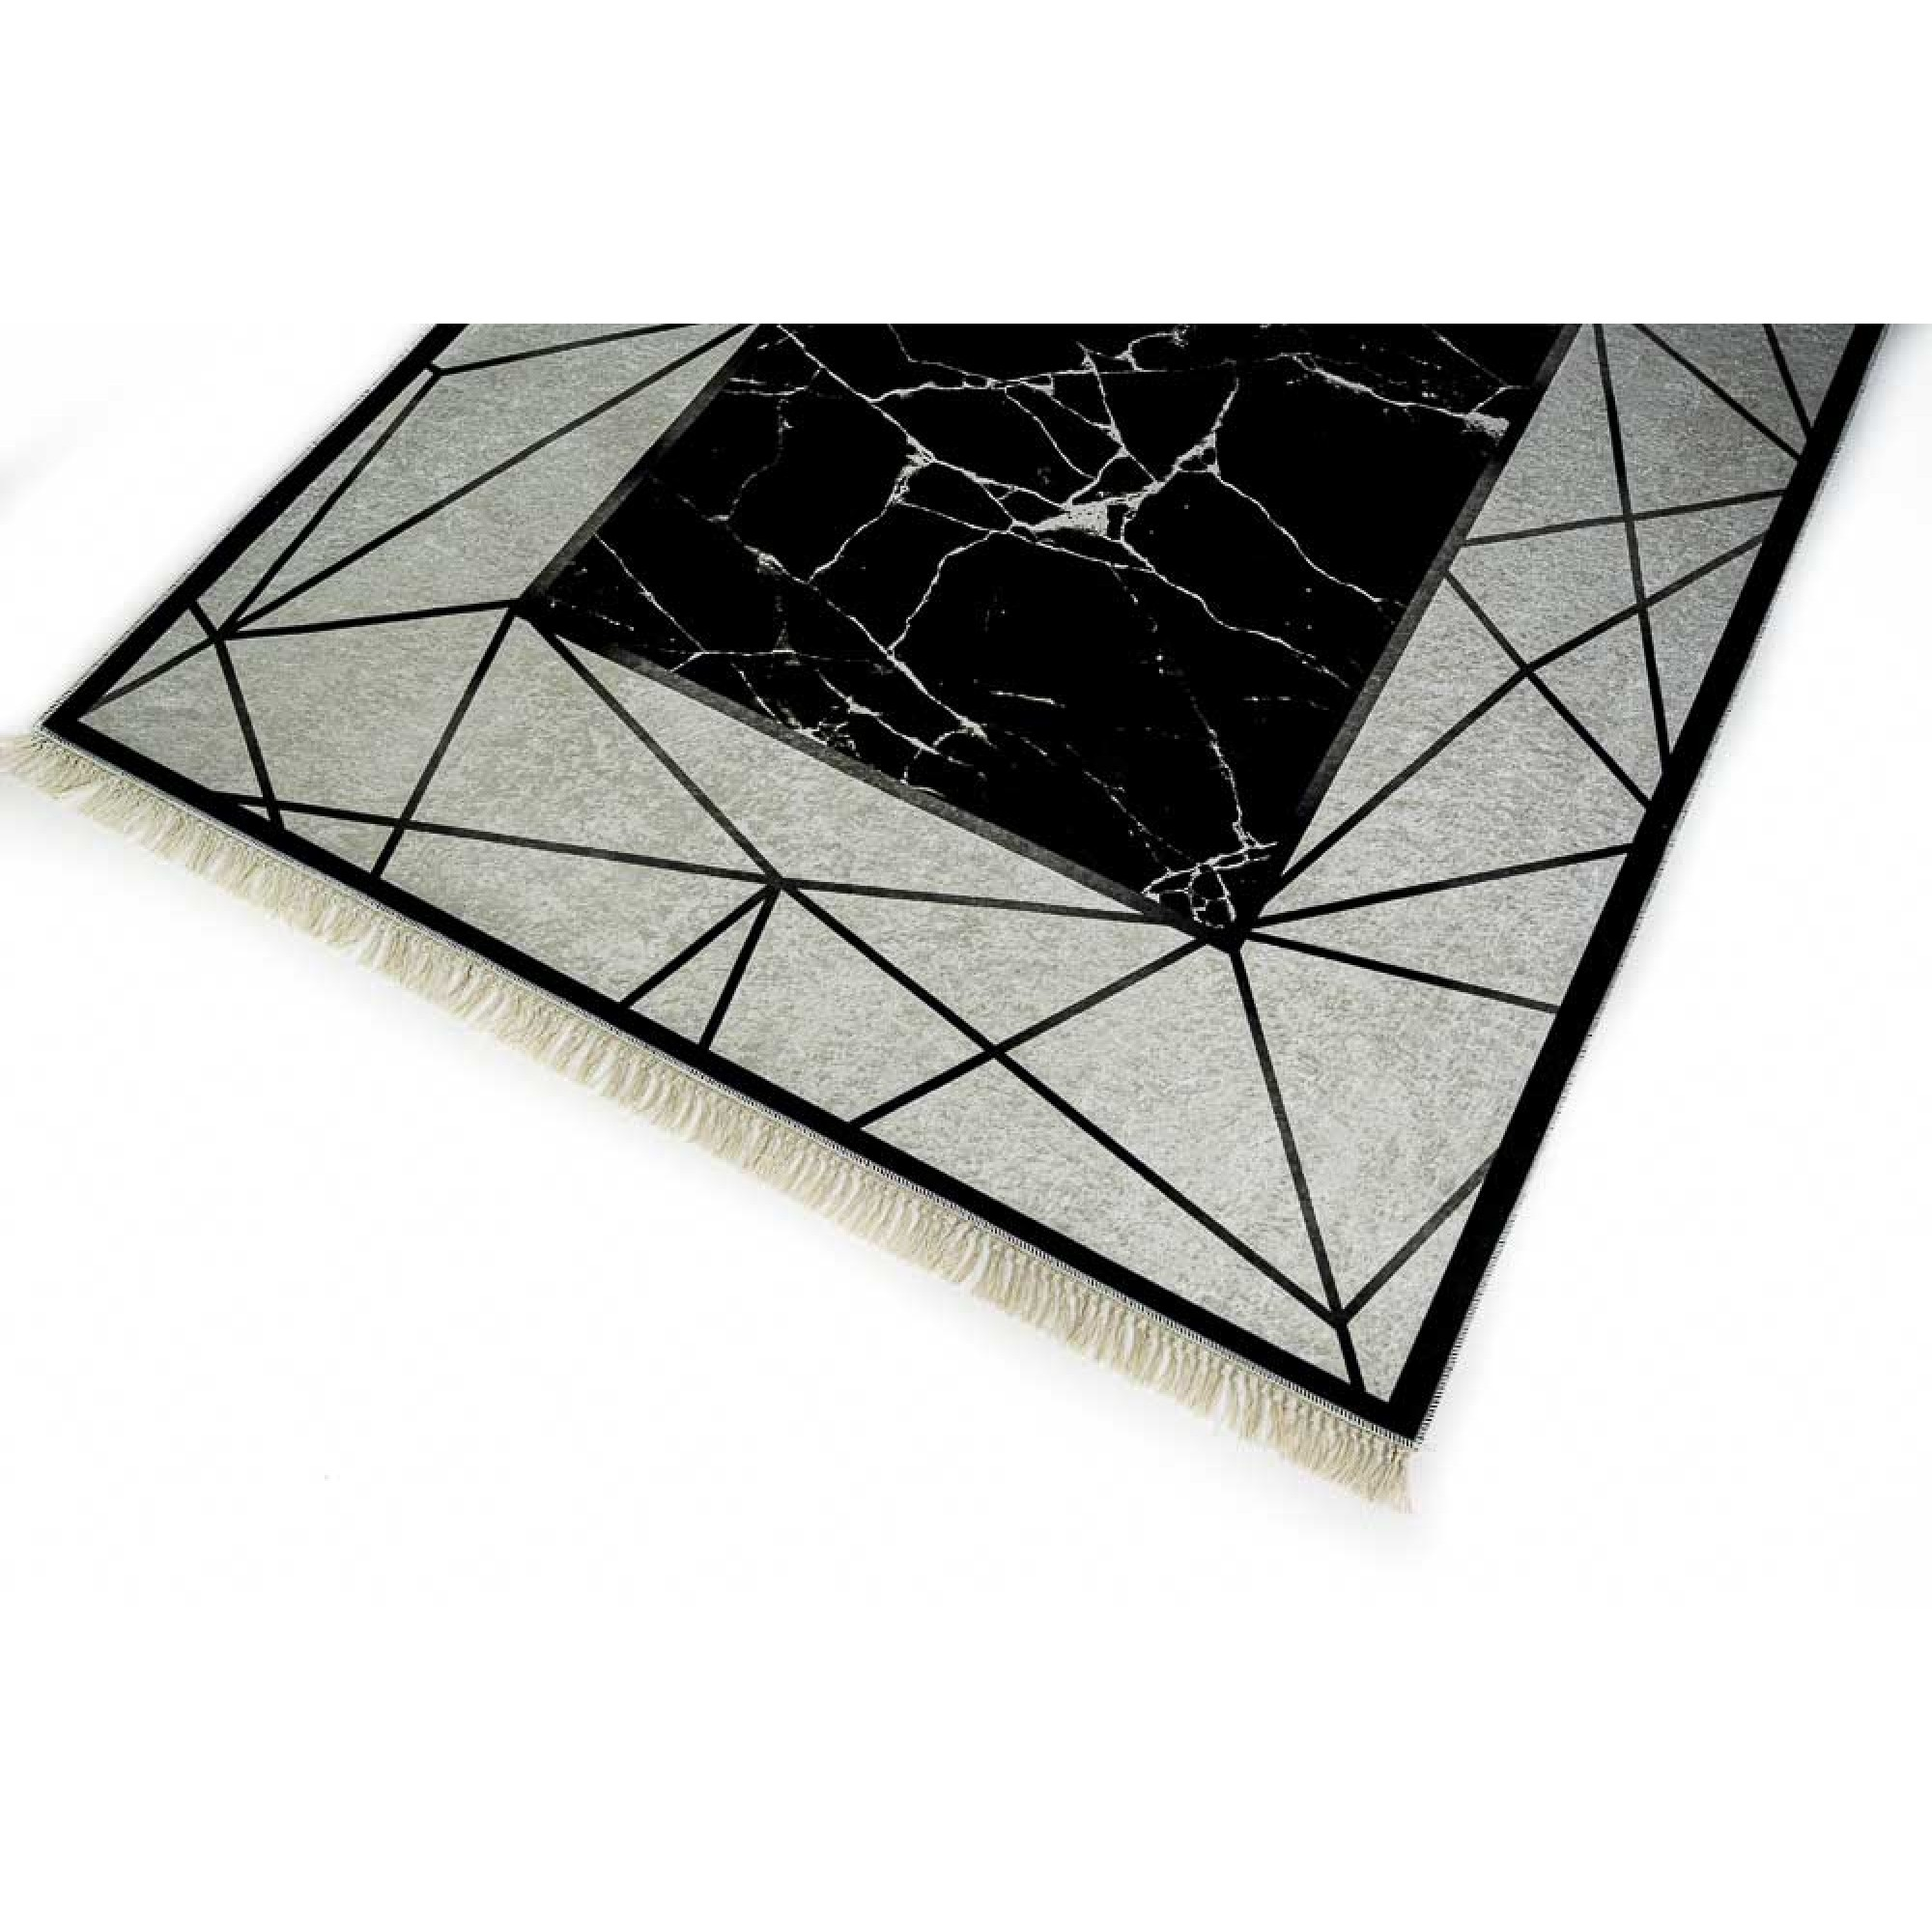 Rug with digital print with geometric patterns, white, black and gray